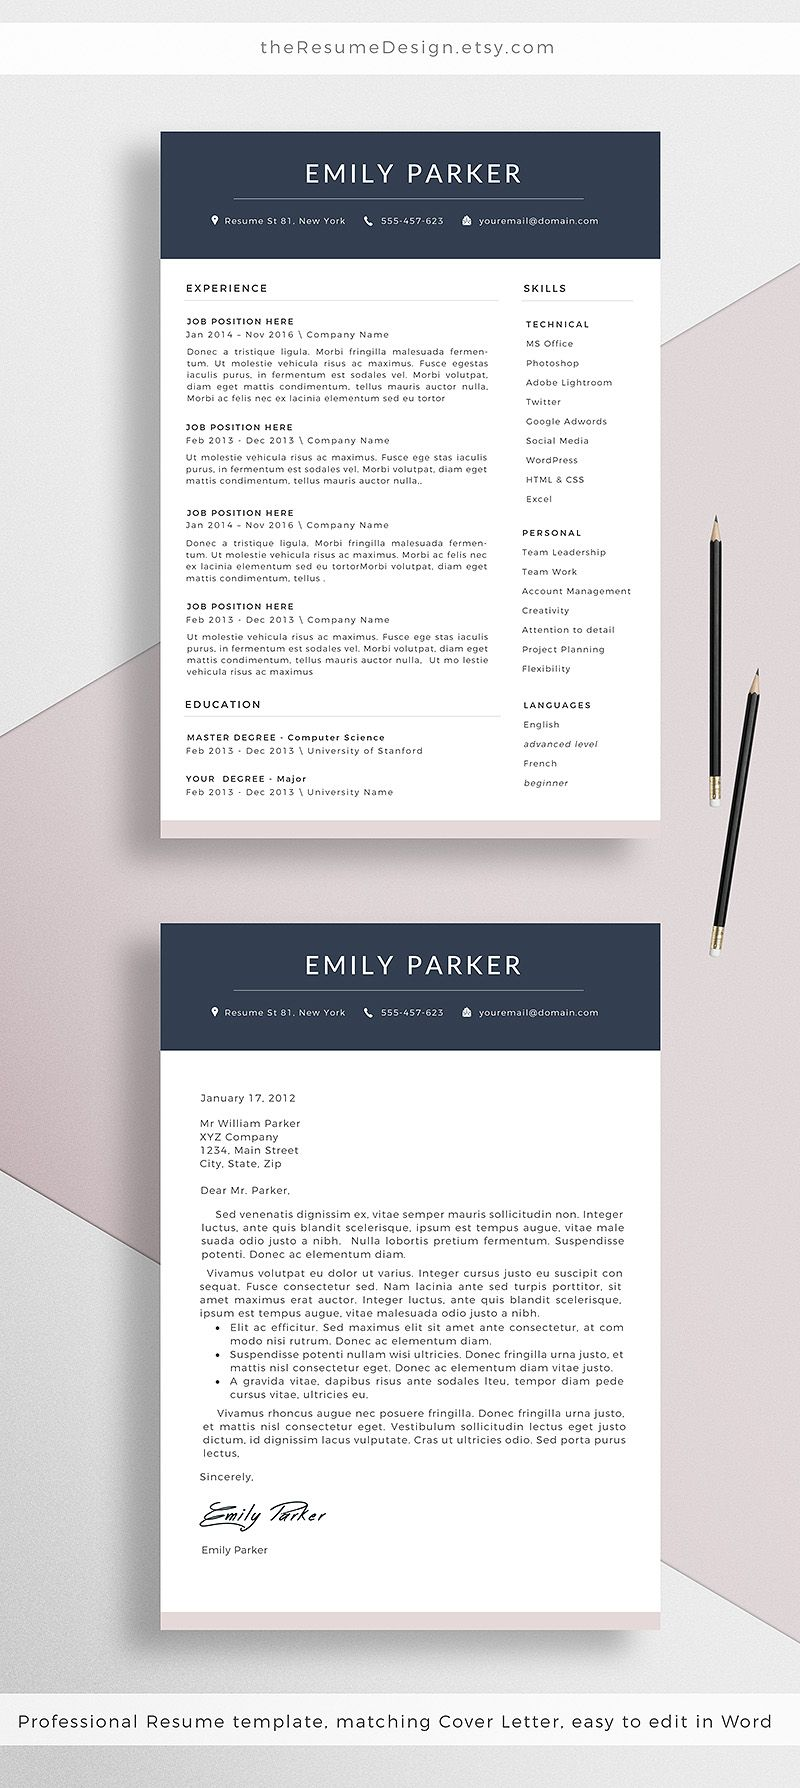 Our NEW professional Resume Template + Cover Letter for Word ...